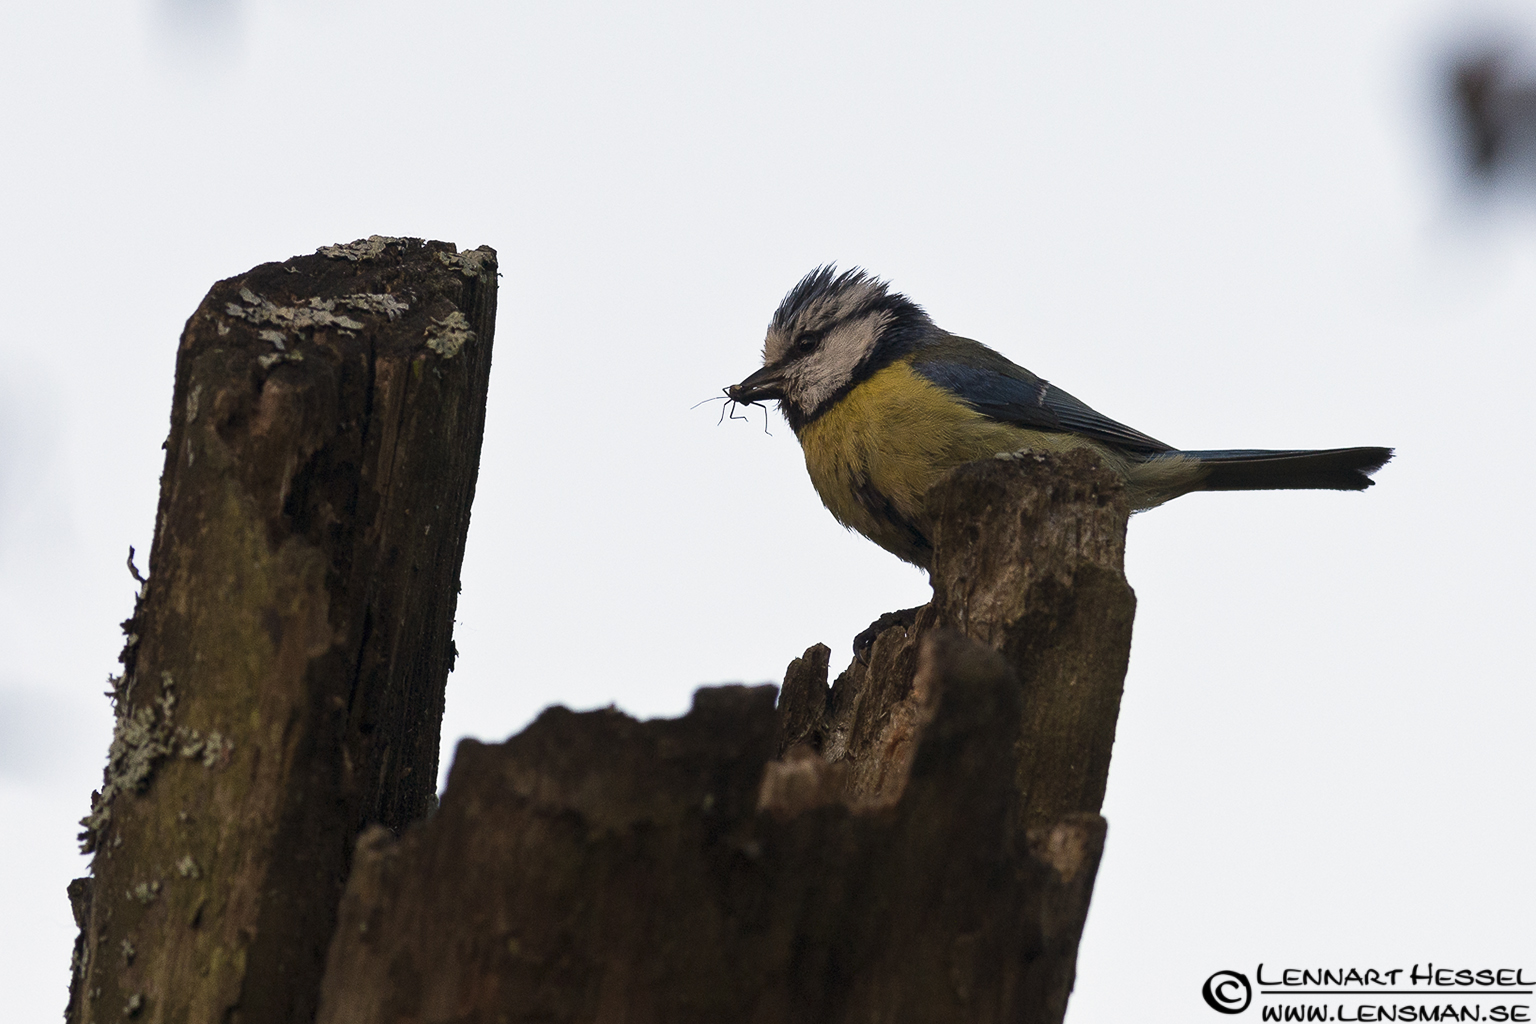 European Blue Tit at Säveån, Gothenburg